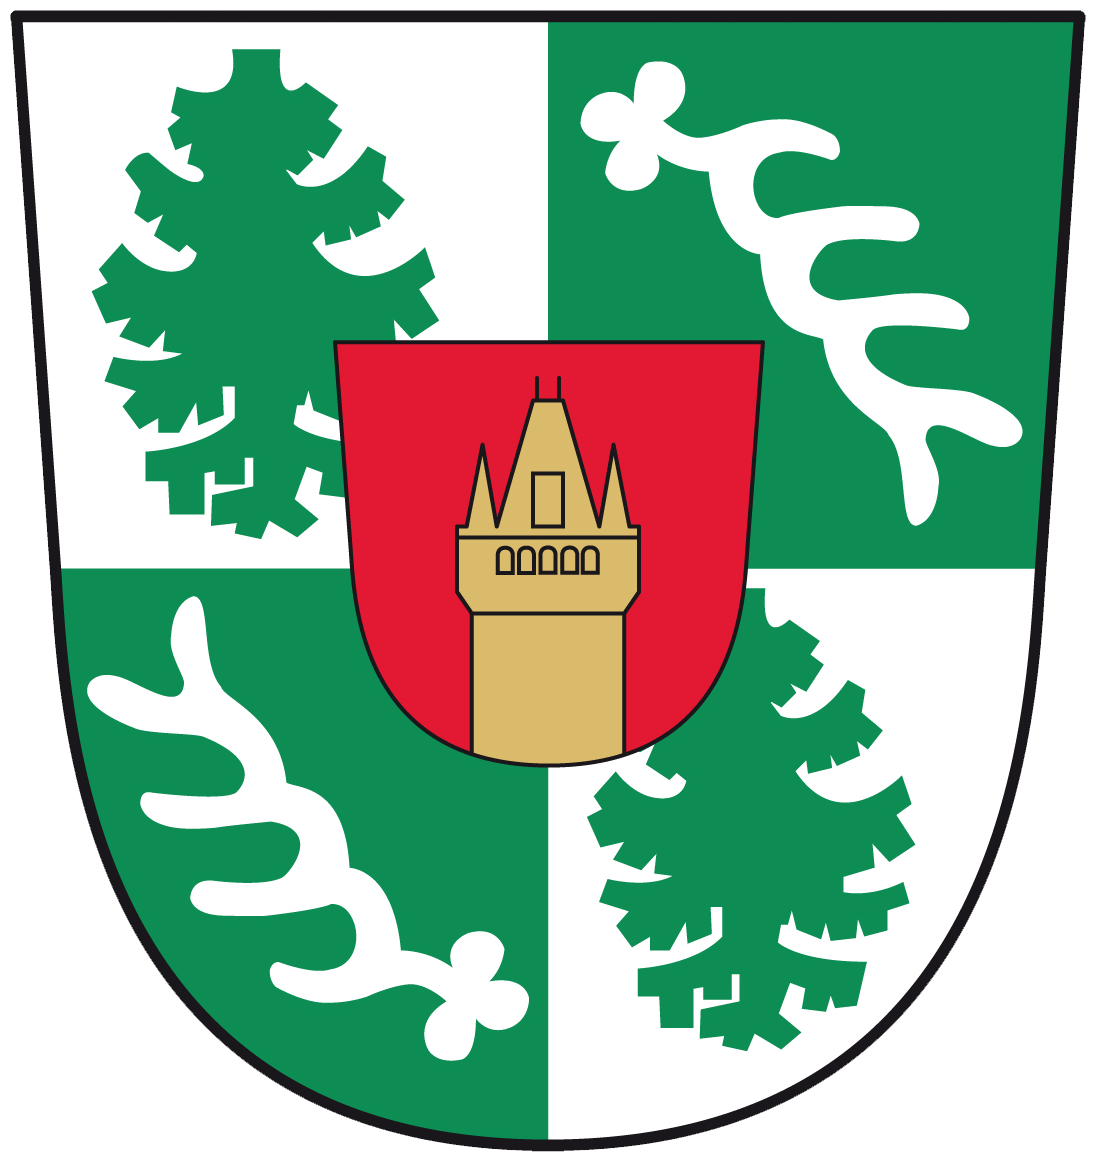 Coat of arms of Hummelshain